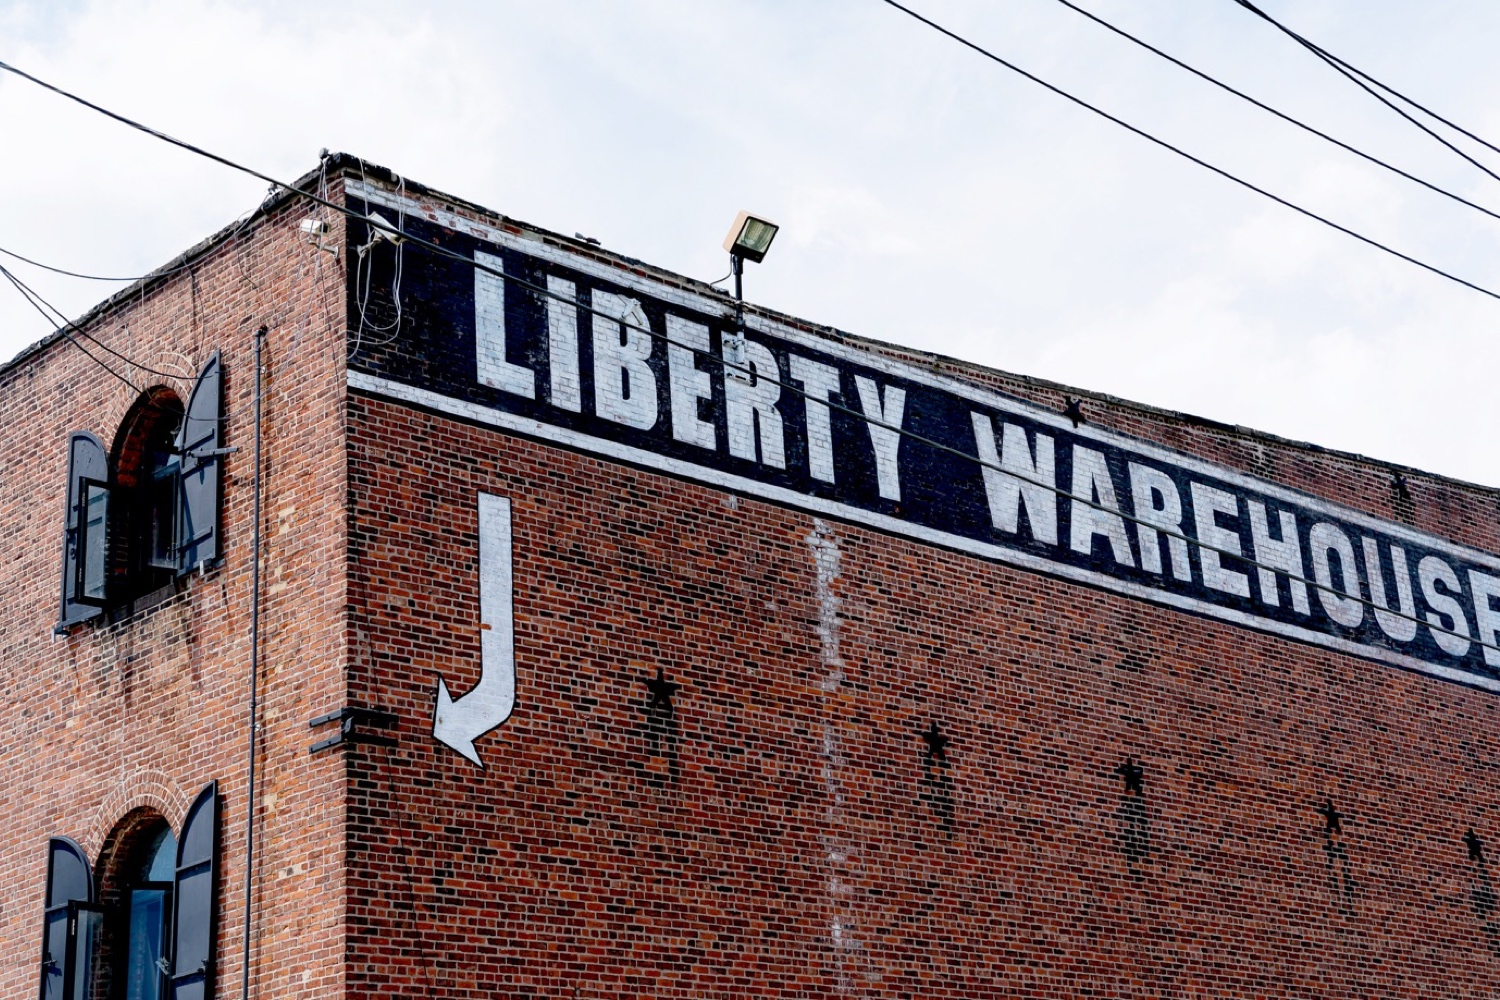 Entrance at Liberty Warehouse in Red Hook, Brooklyn New York.